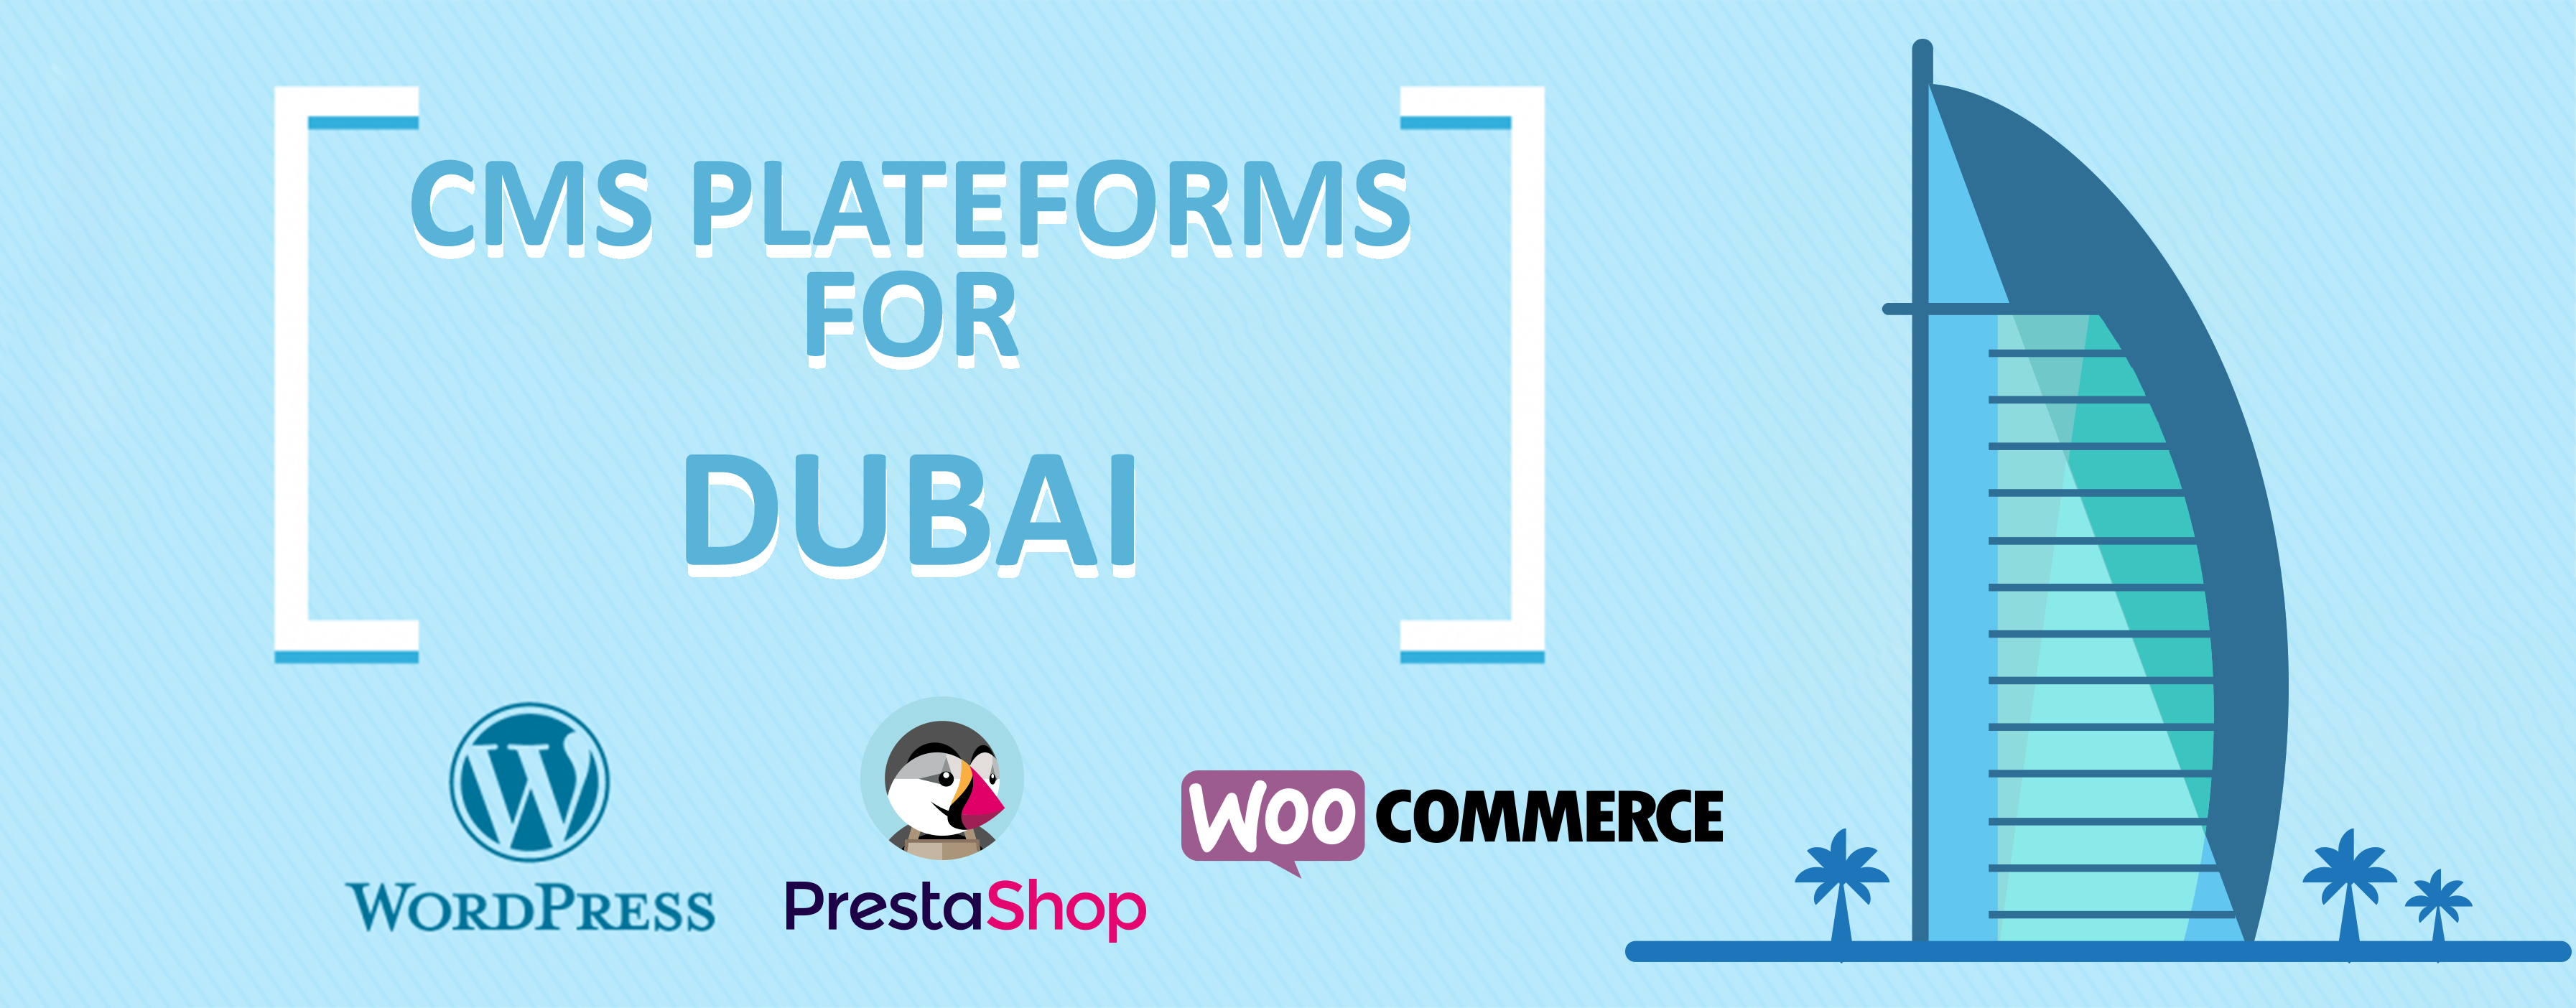 Best CMS Platforms for Dubai Based Businesses